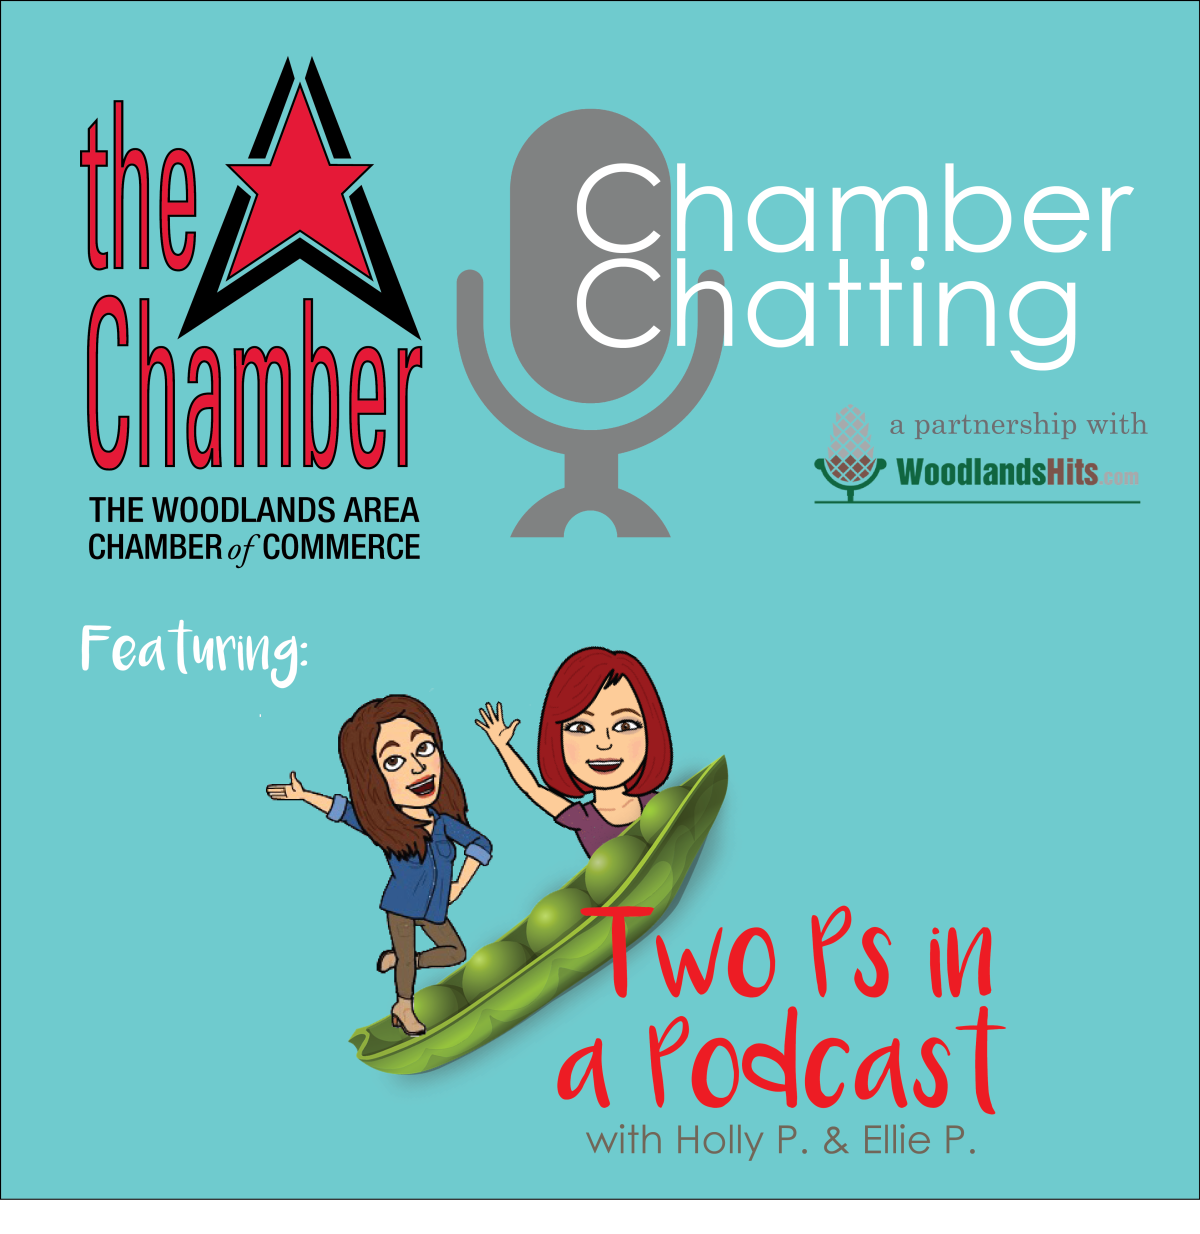 Chamber_Chatting_feat_2_Ps_ina_Podcast-w1200.png